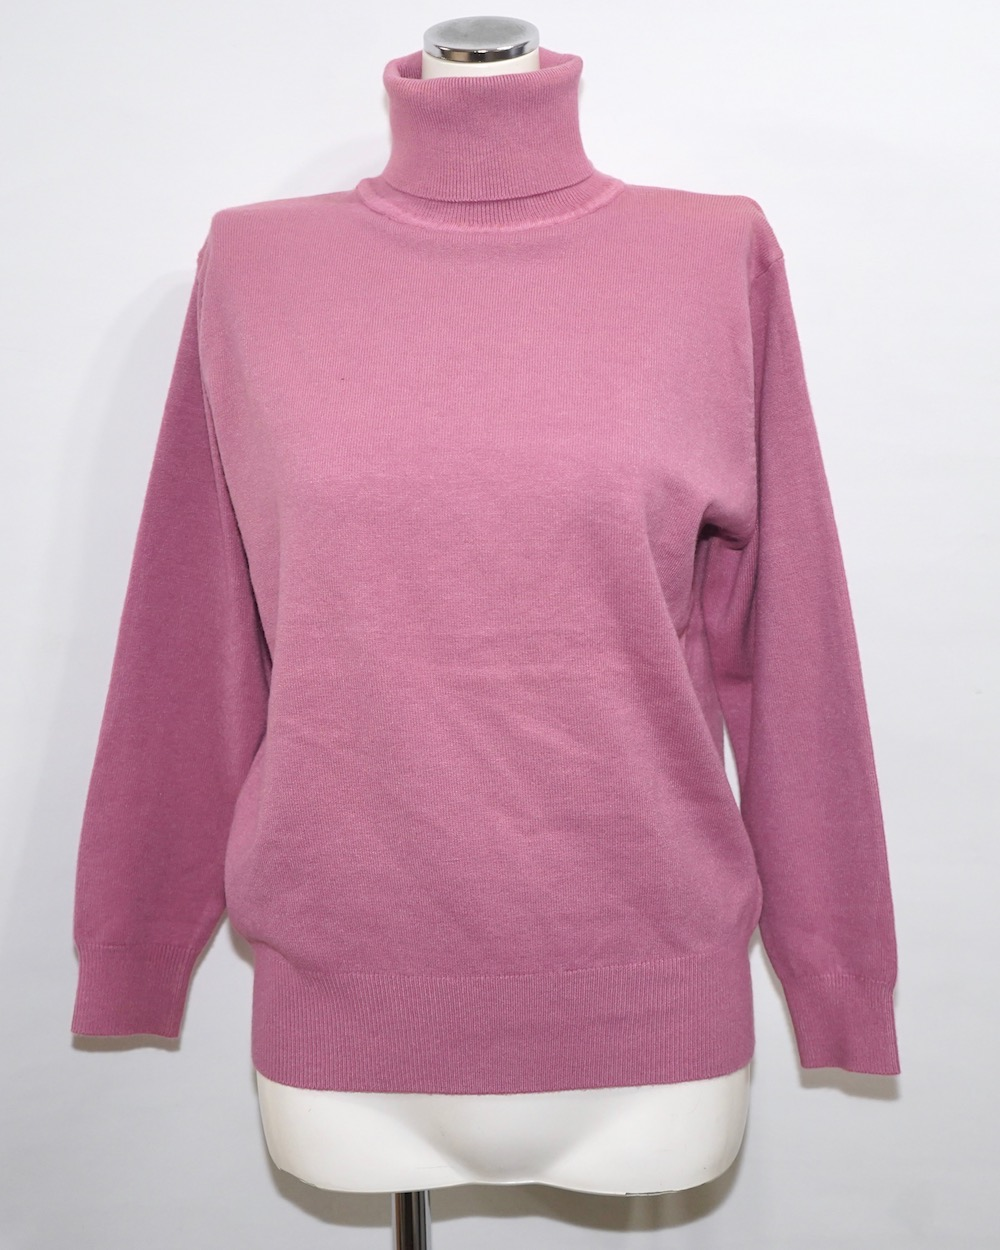 Basic Turtle Neck Knit Tops(pink)